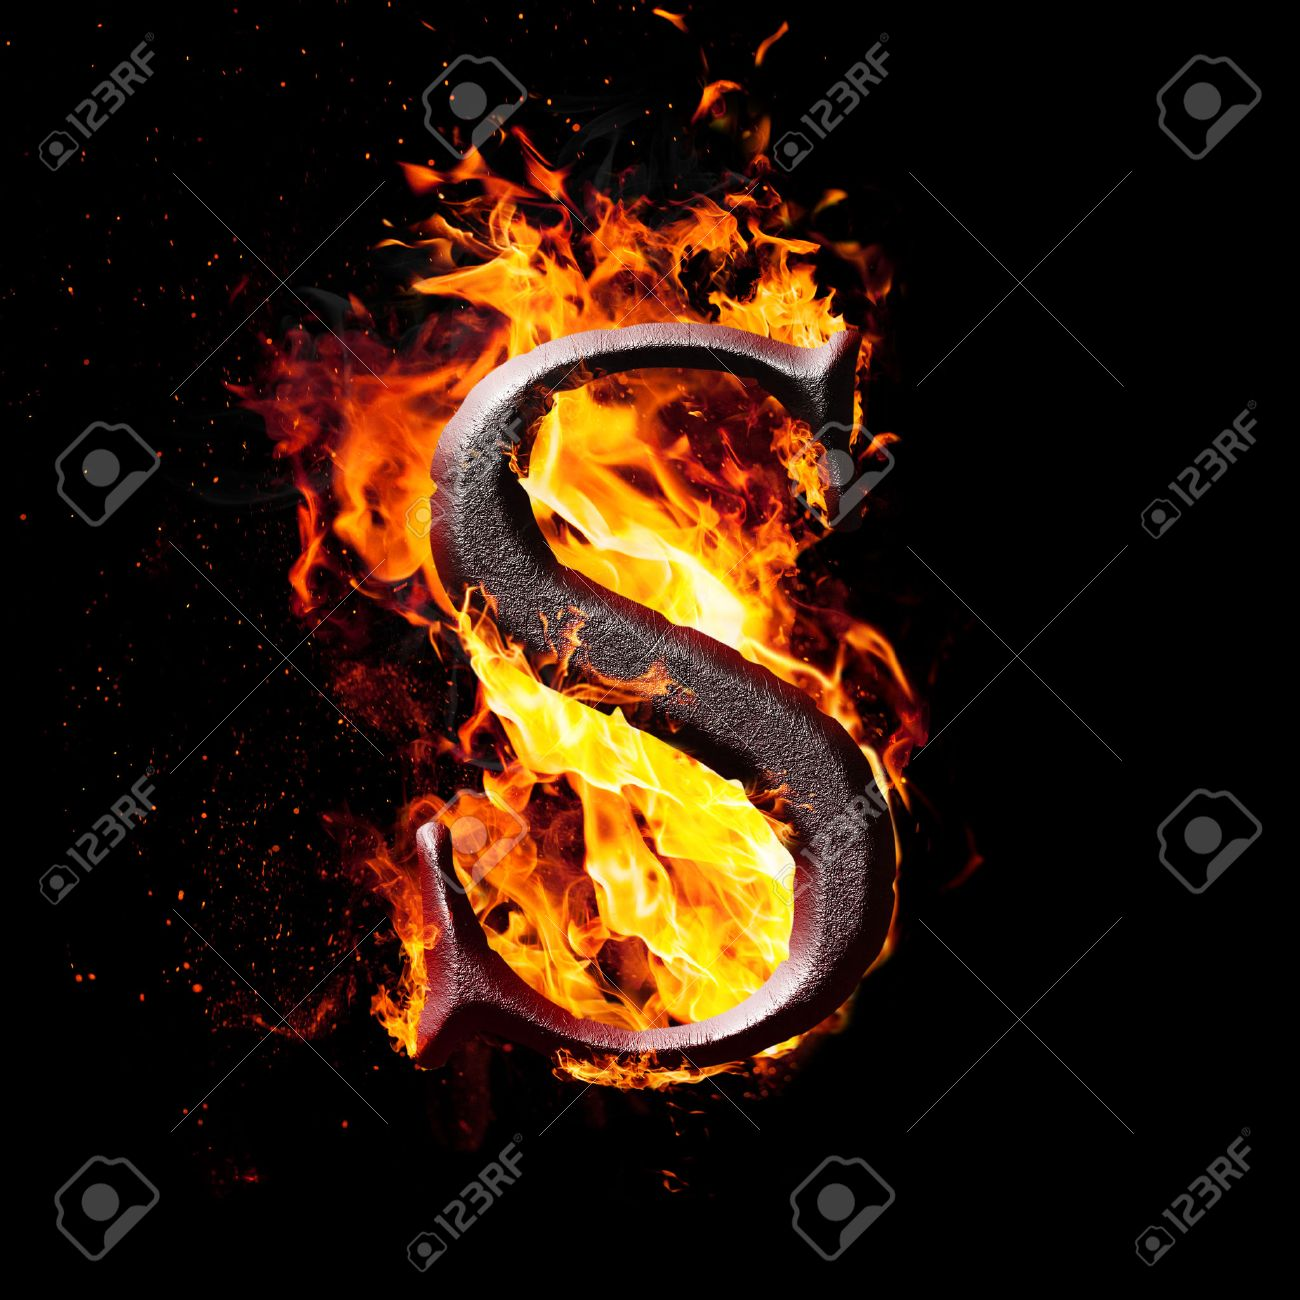 Amazing Fire Letter S: Letters And Symbols In Fire   Letter S. Stock Photo